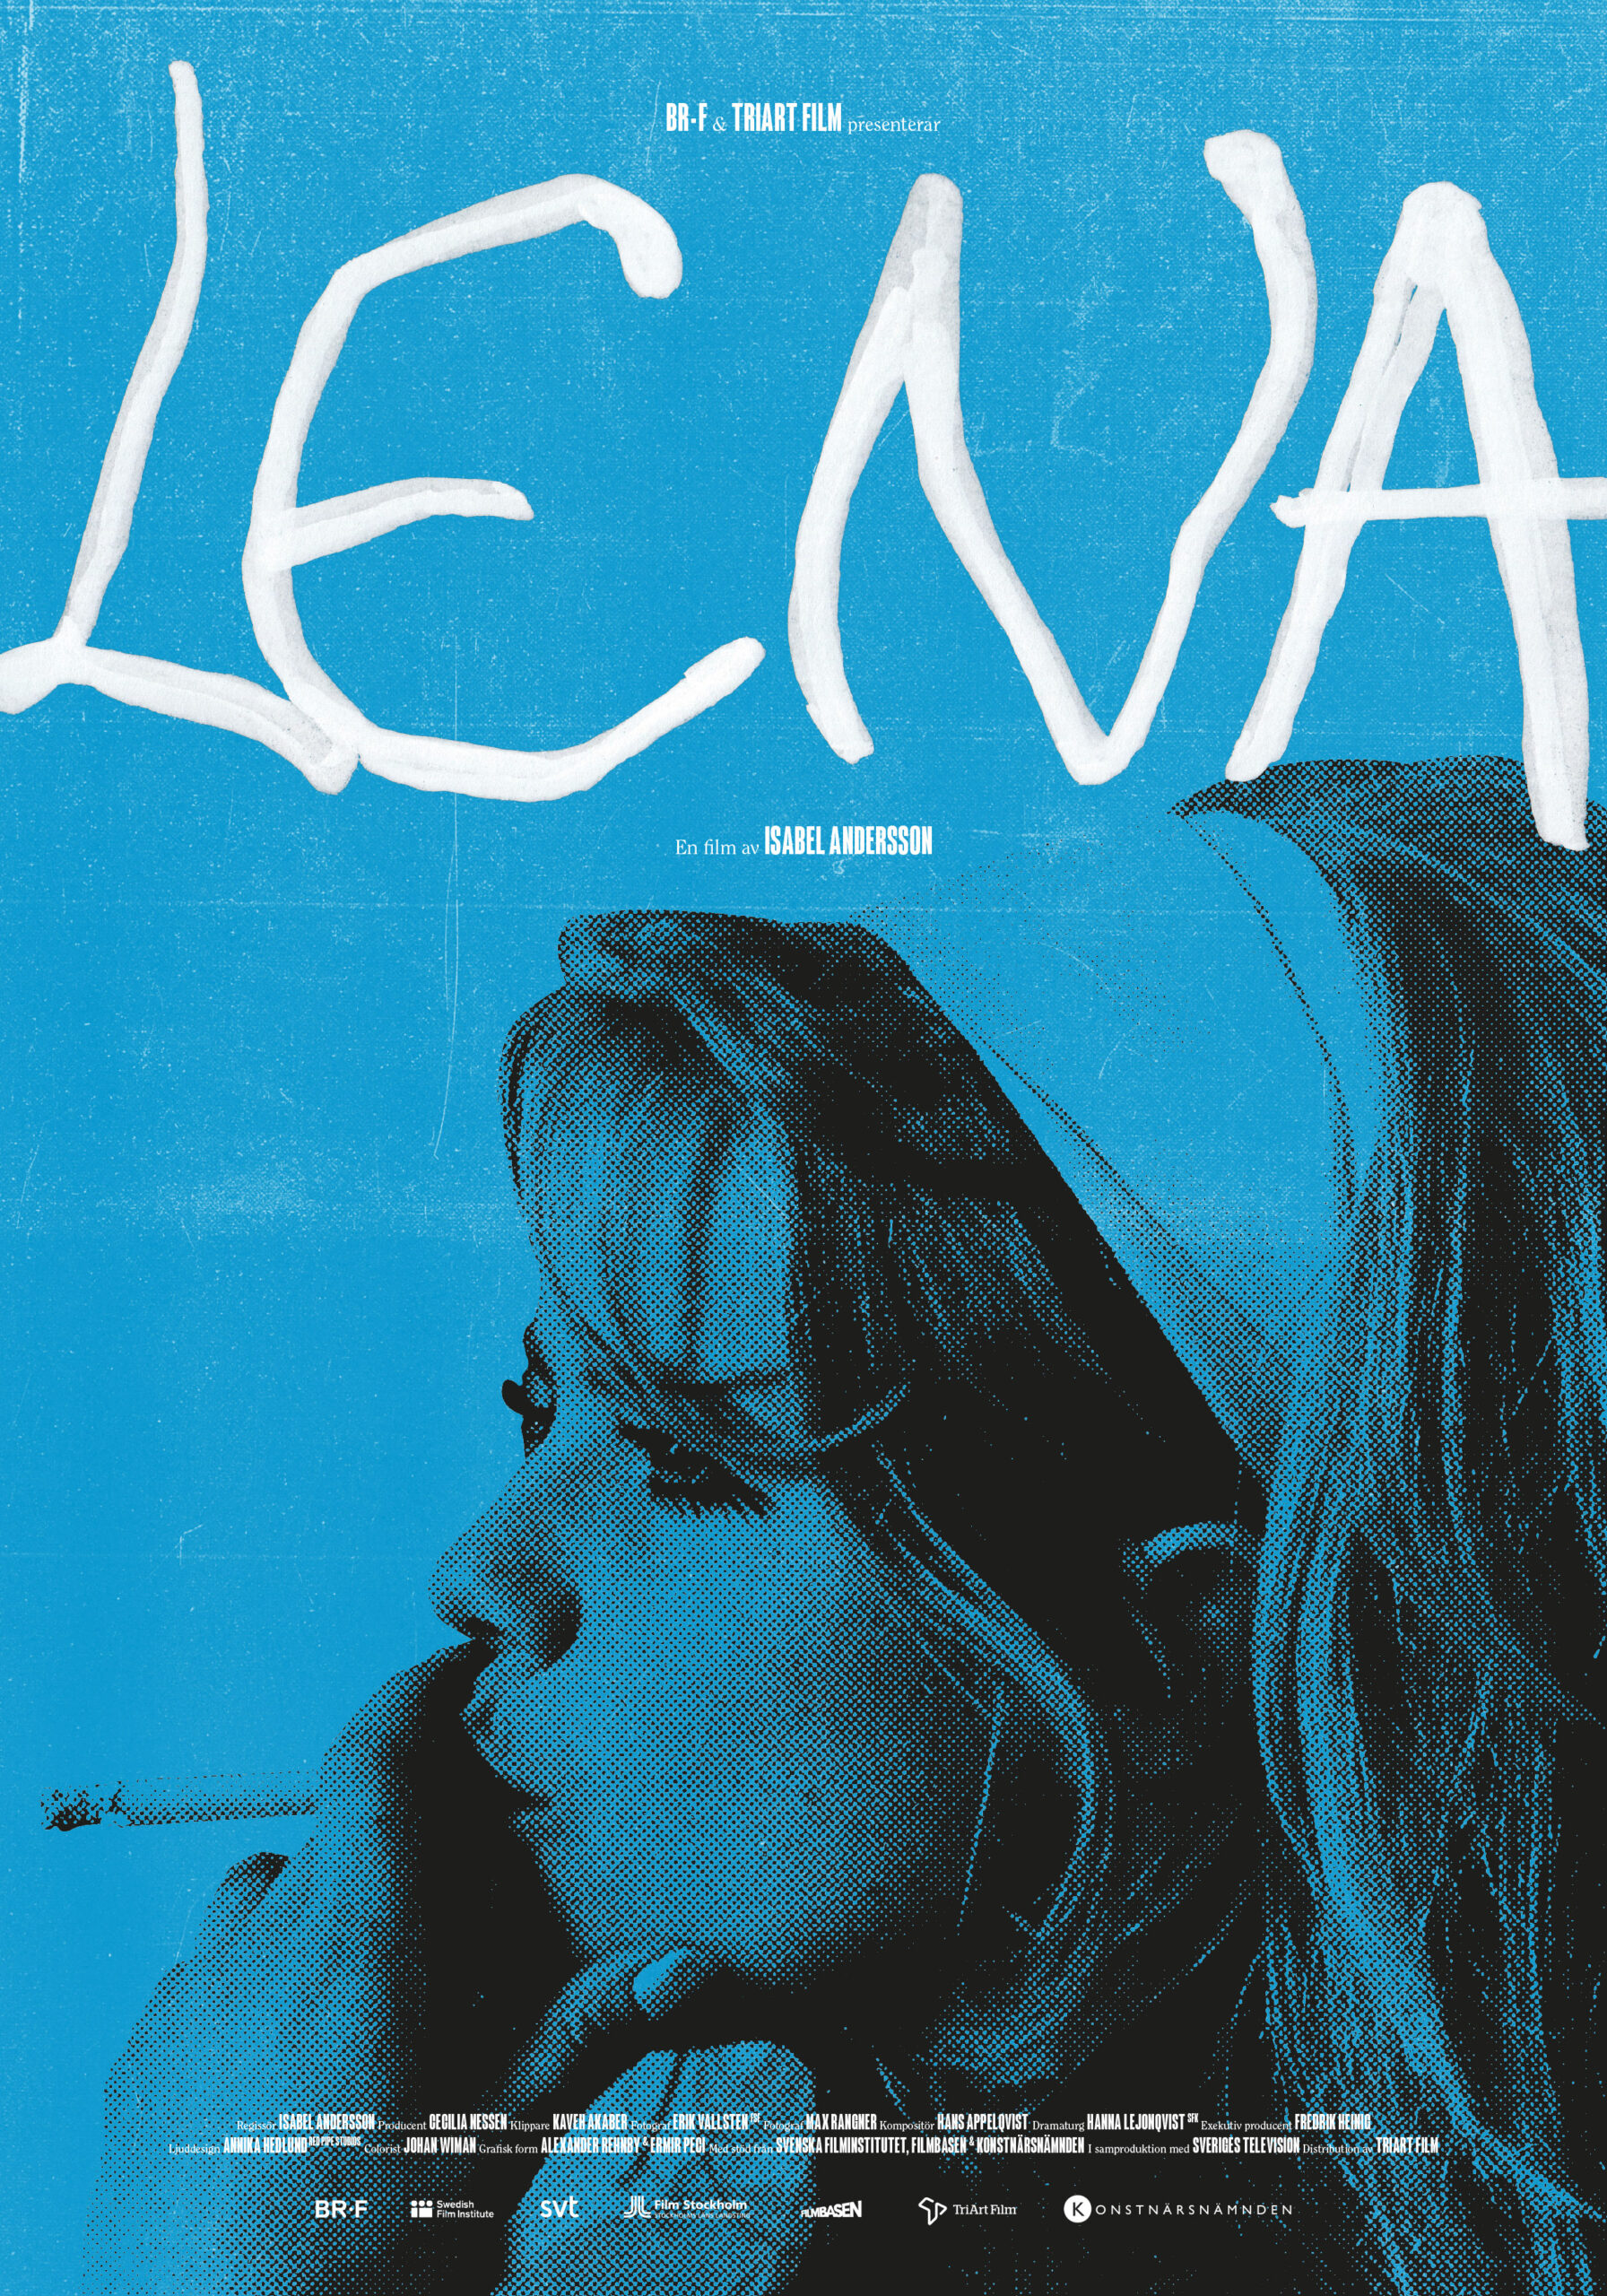 You are currently viewing Lilla Filmfestivalen: Lena